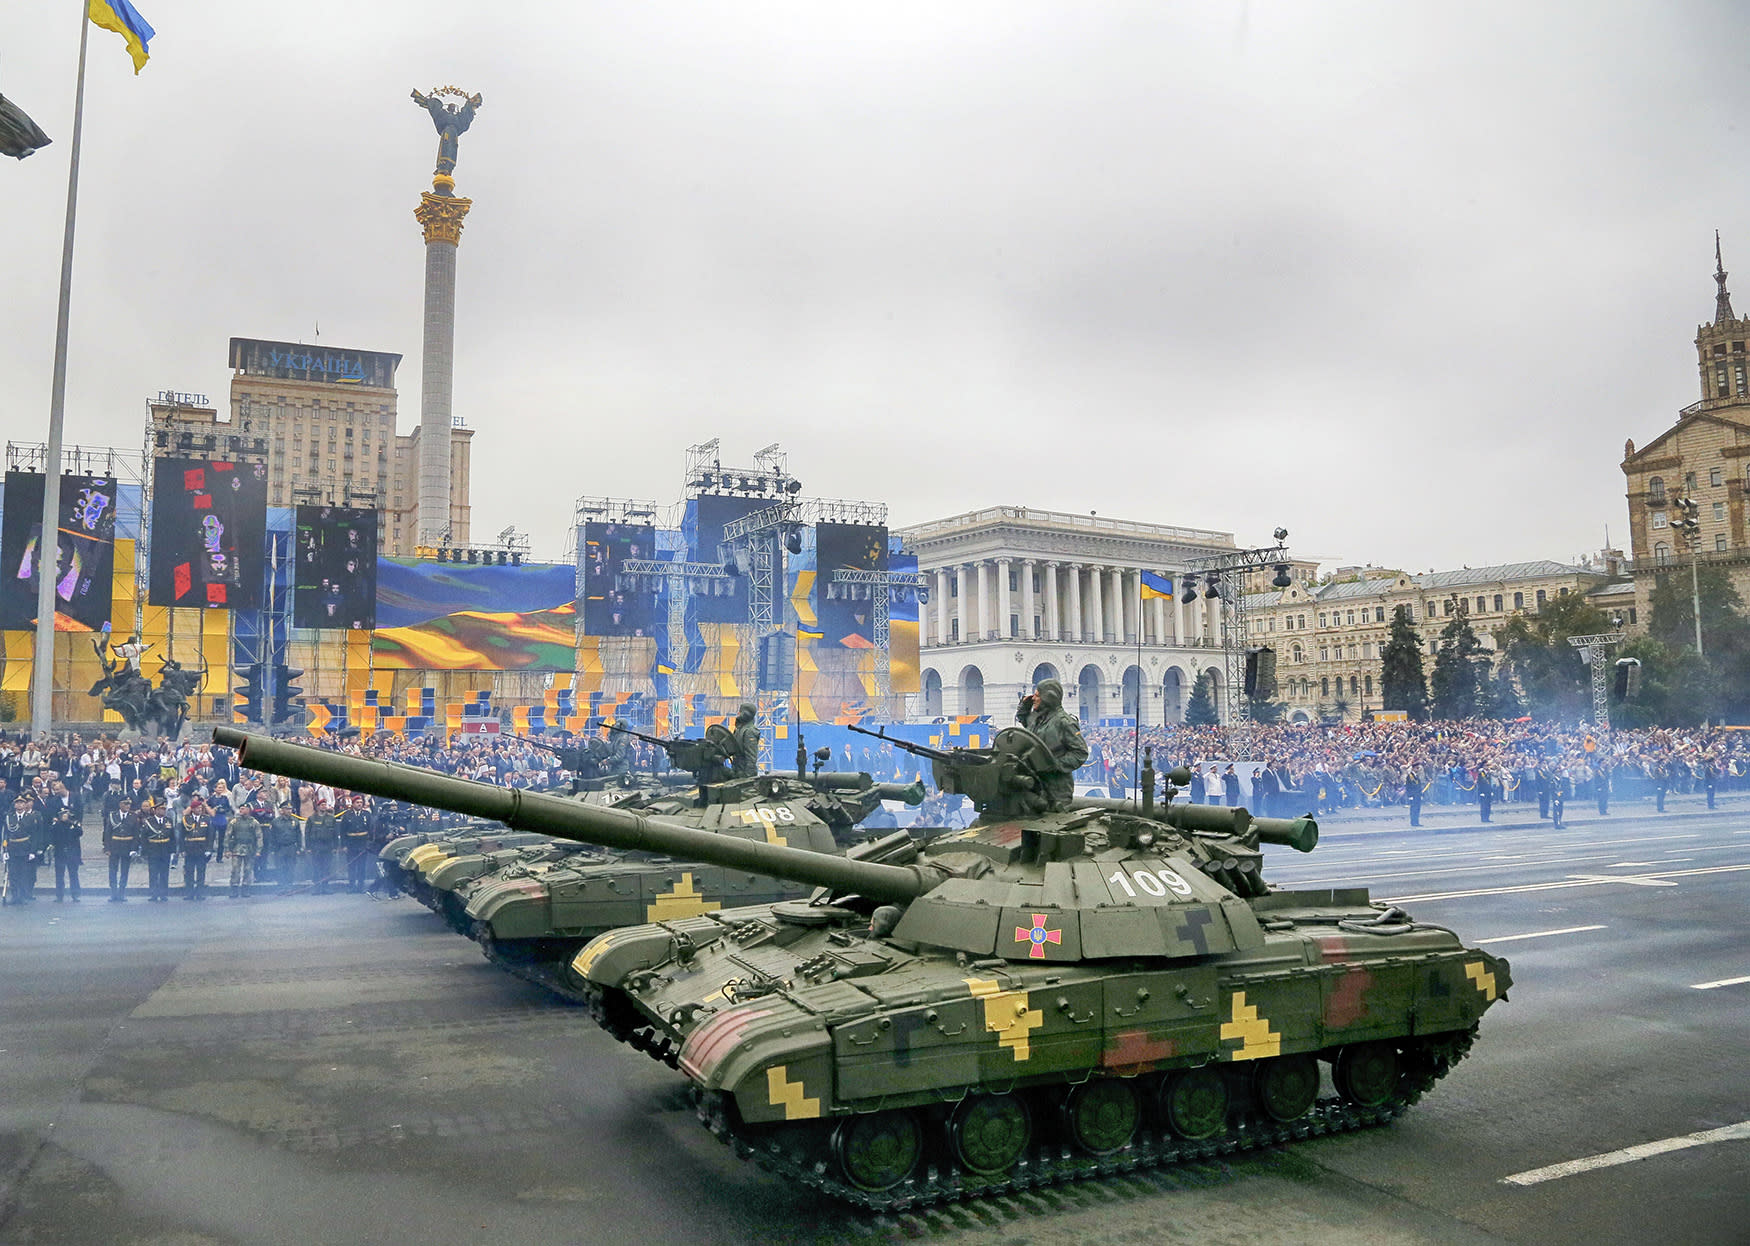 <p>Tanks ride along Khreshchatyk Street, during a military parade to celebrate Independence Day in Kiev, Ukraine, Wednesday, Aug. 24, 2016. (Photo: Efrem Lukatsky/AP) </p>